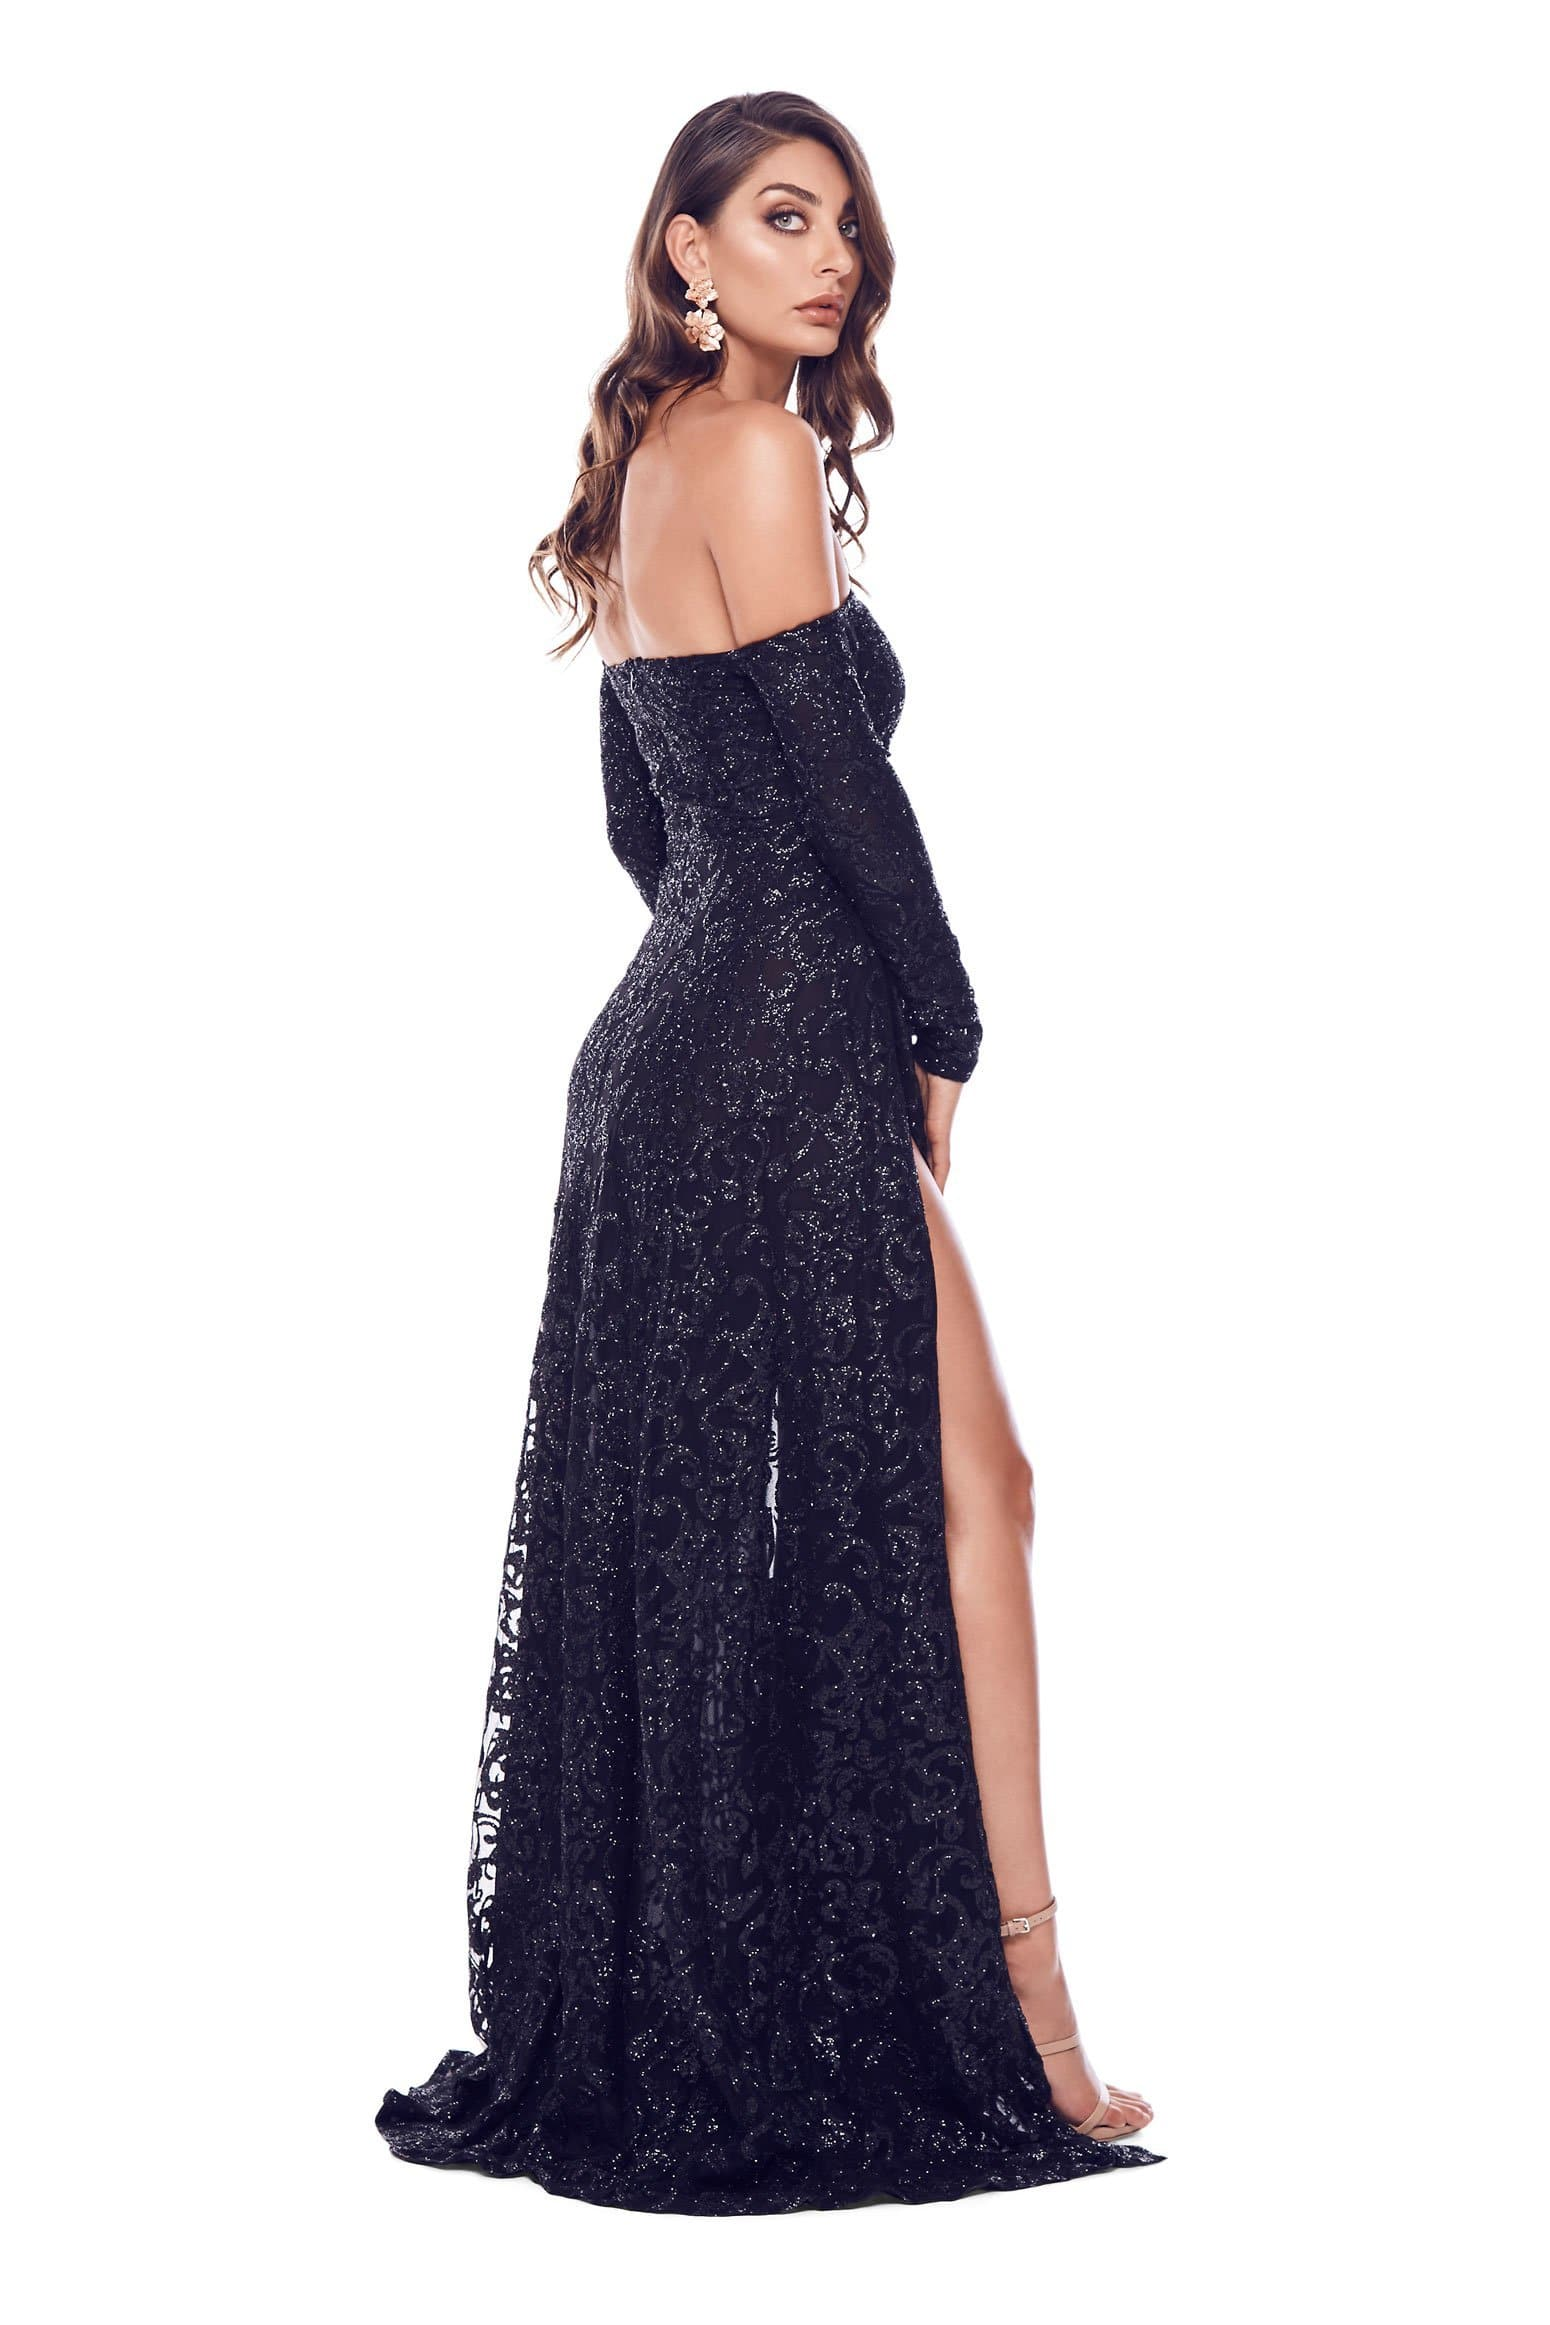 Flame - Black Glitter Gown with Long Off-Shoulder Sleeves 01bd297be